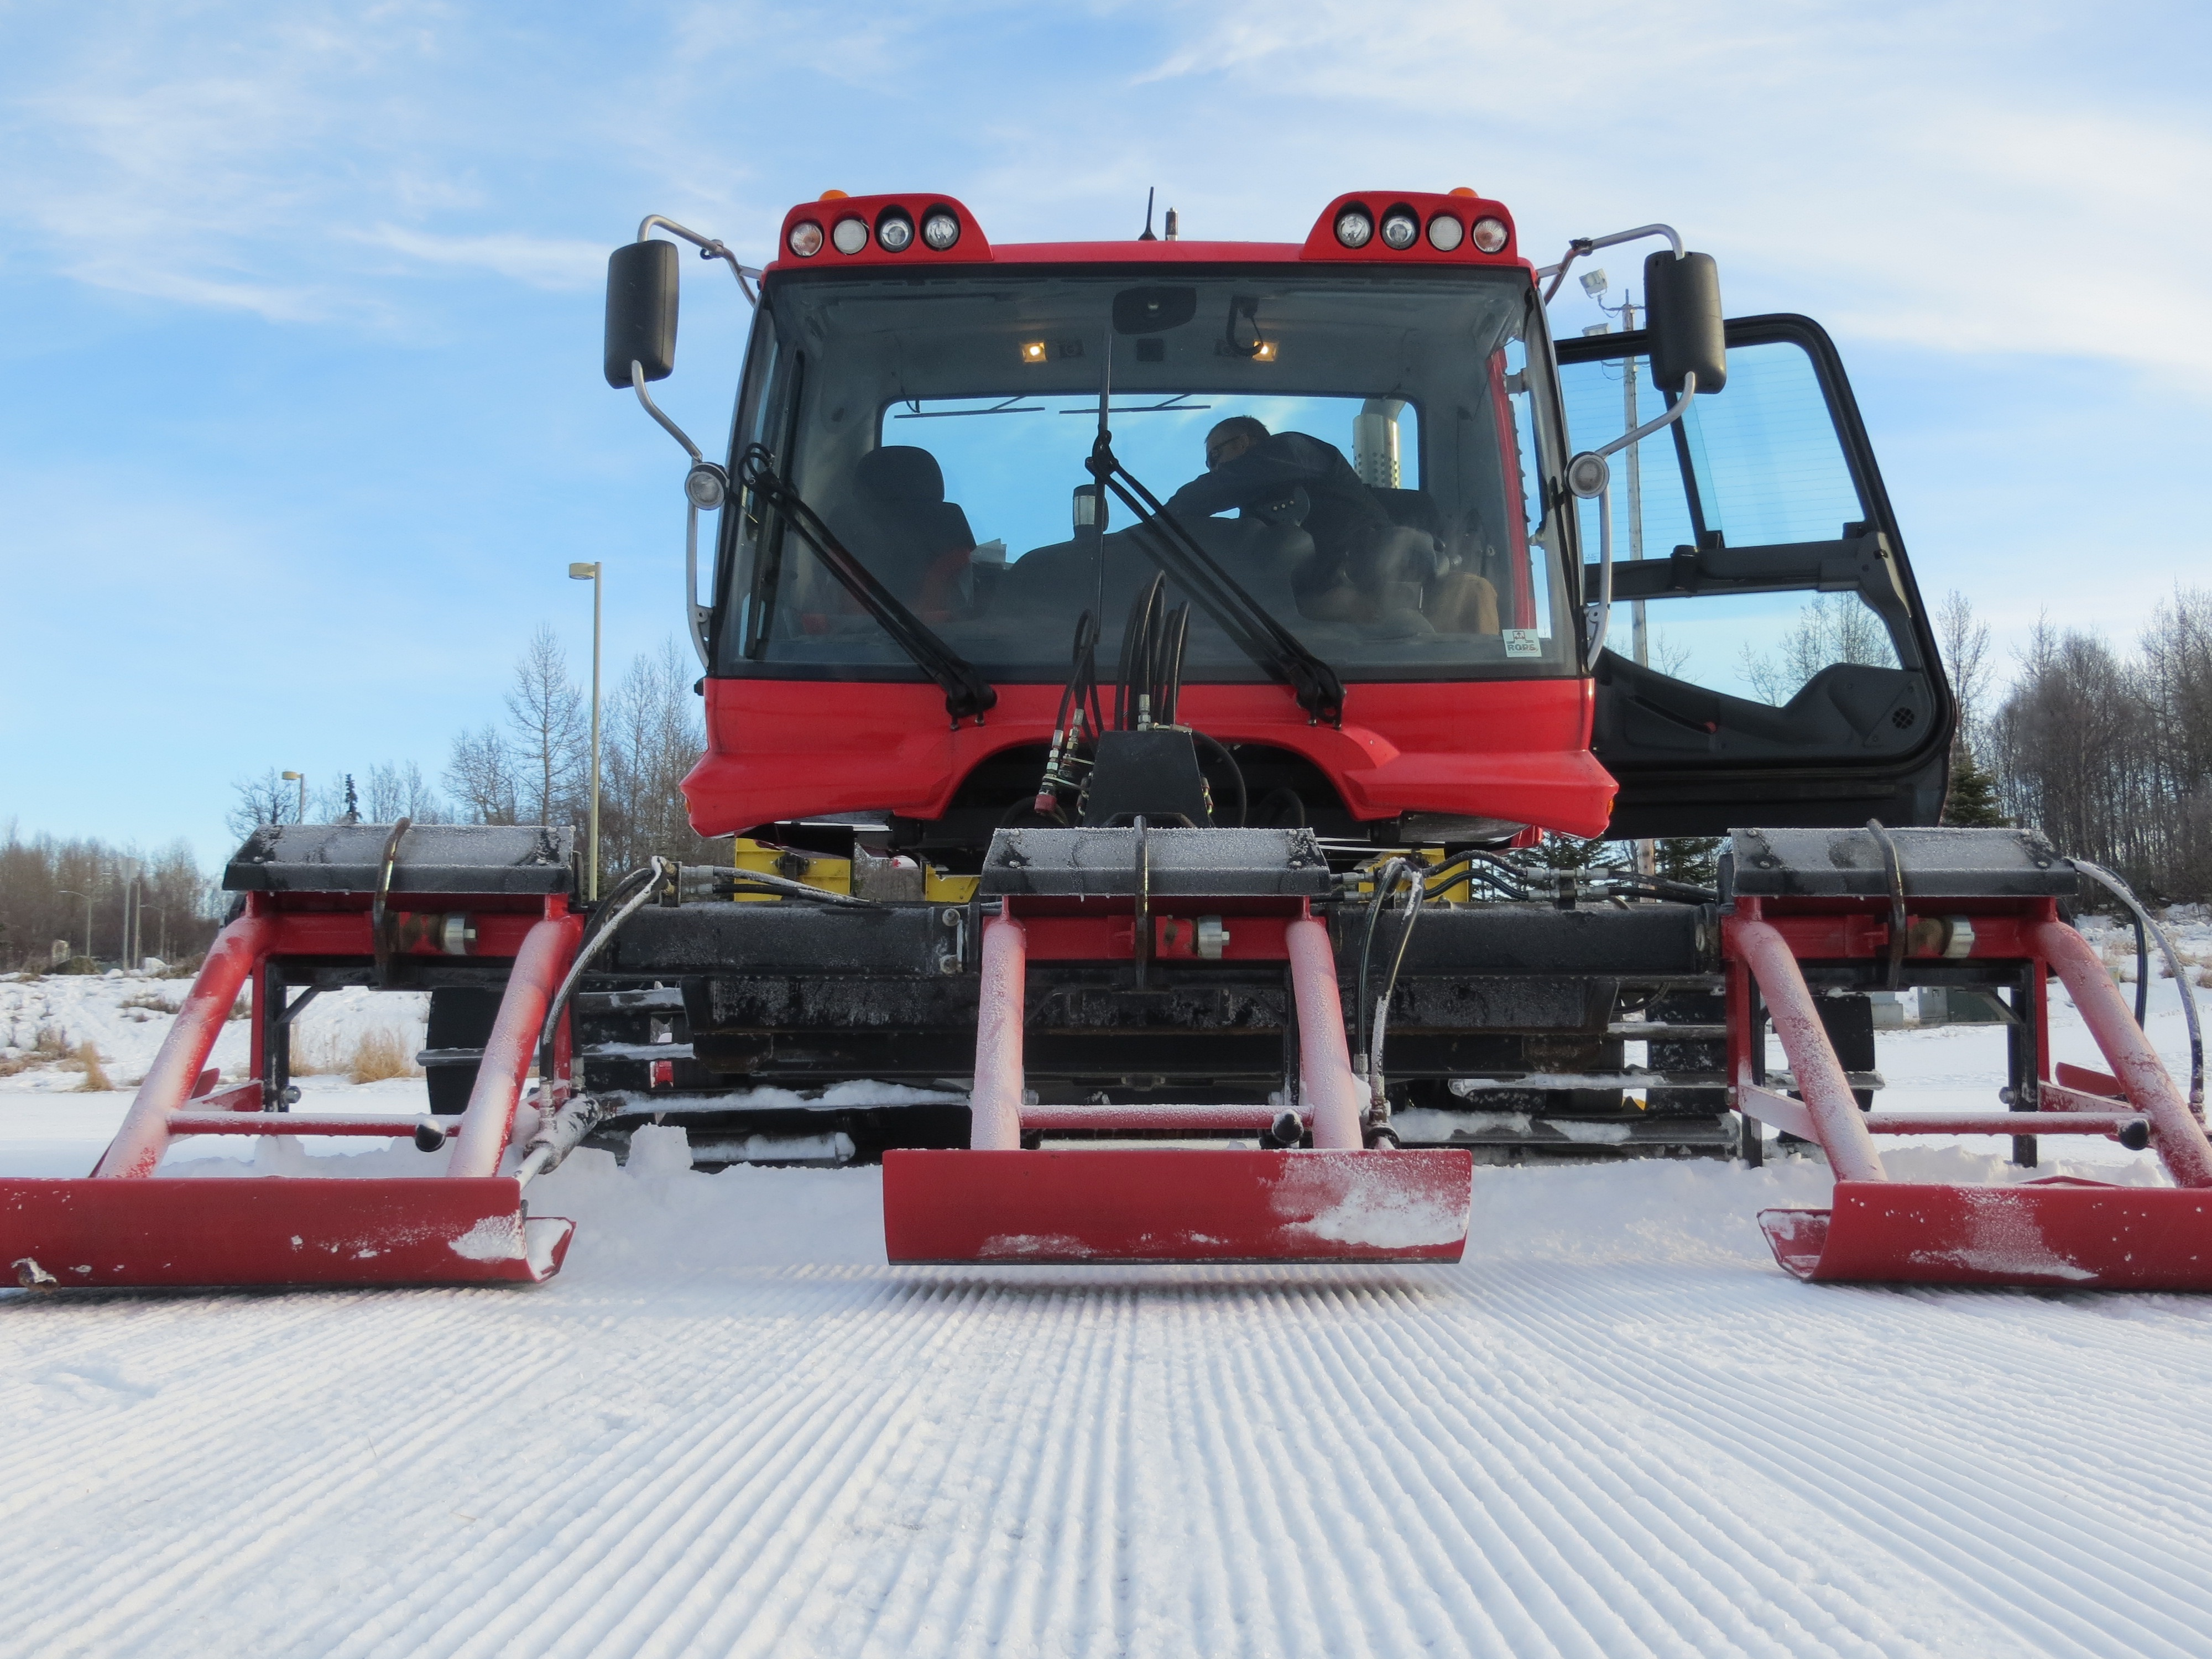 PistenBully 2015 - Nordic Skiing Association of Anchorage